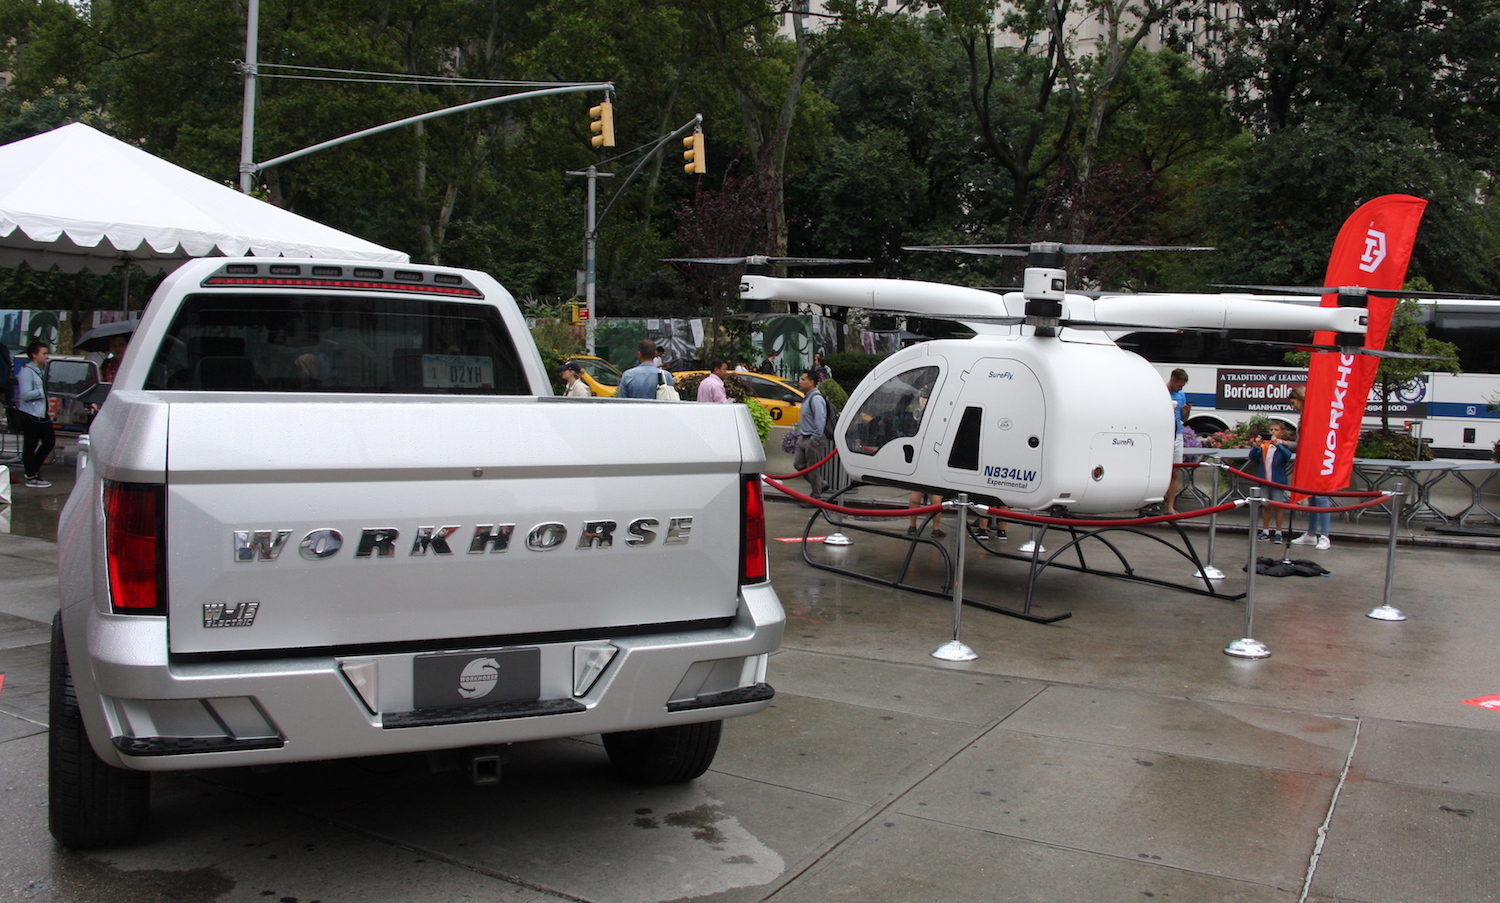 Workhorse brings an electric pickup truck, helicopter to Manhattan